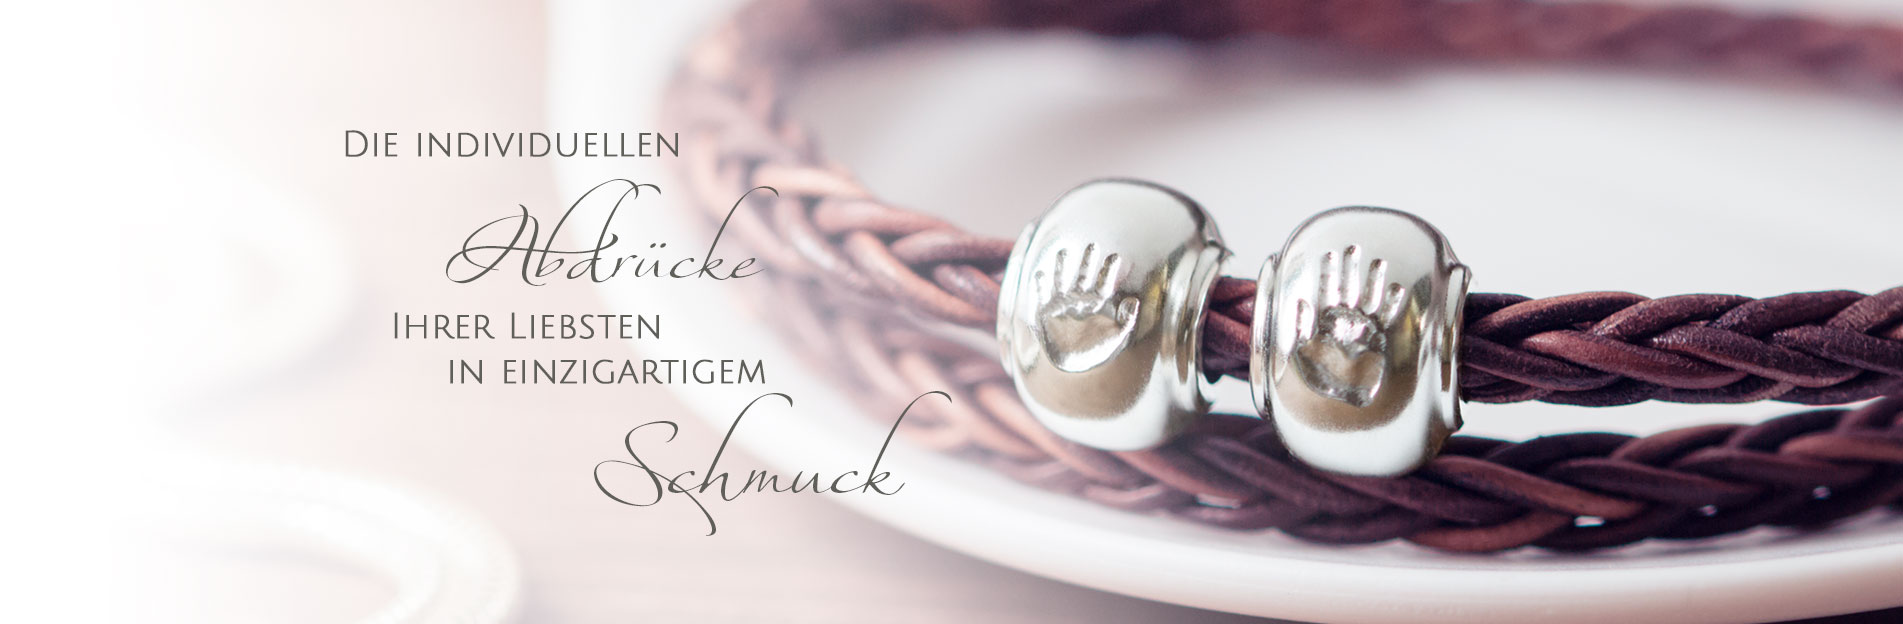 FOYA Schmuckdesign | FOYA Personal Jewelry Header